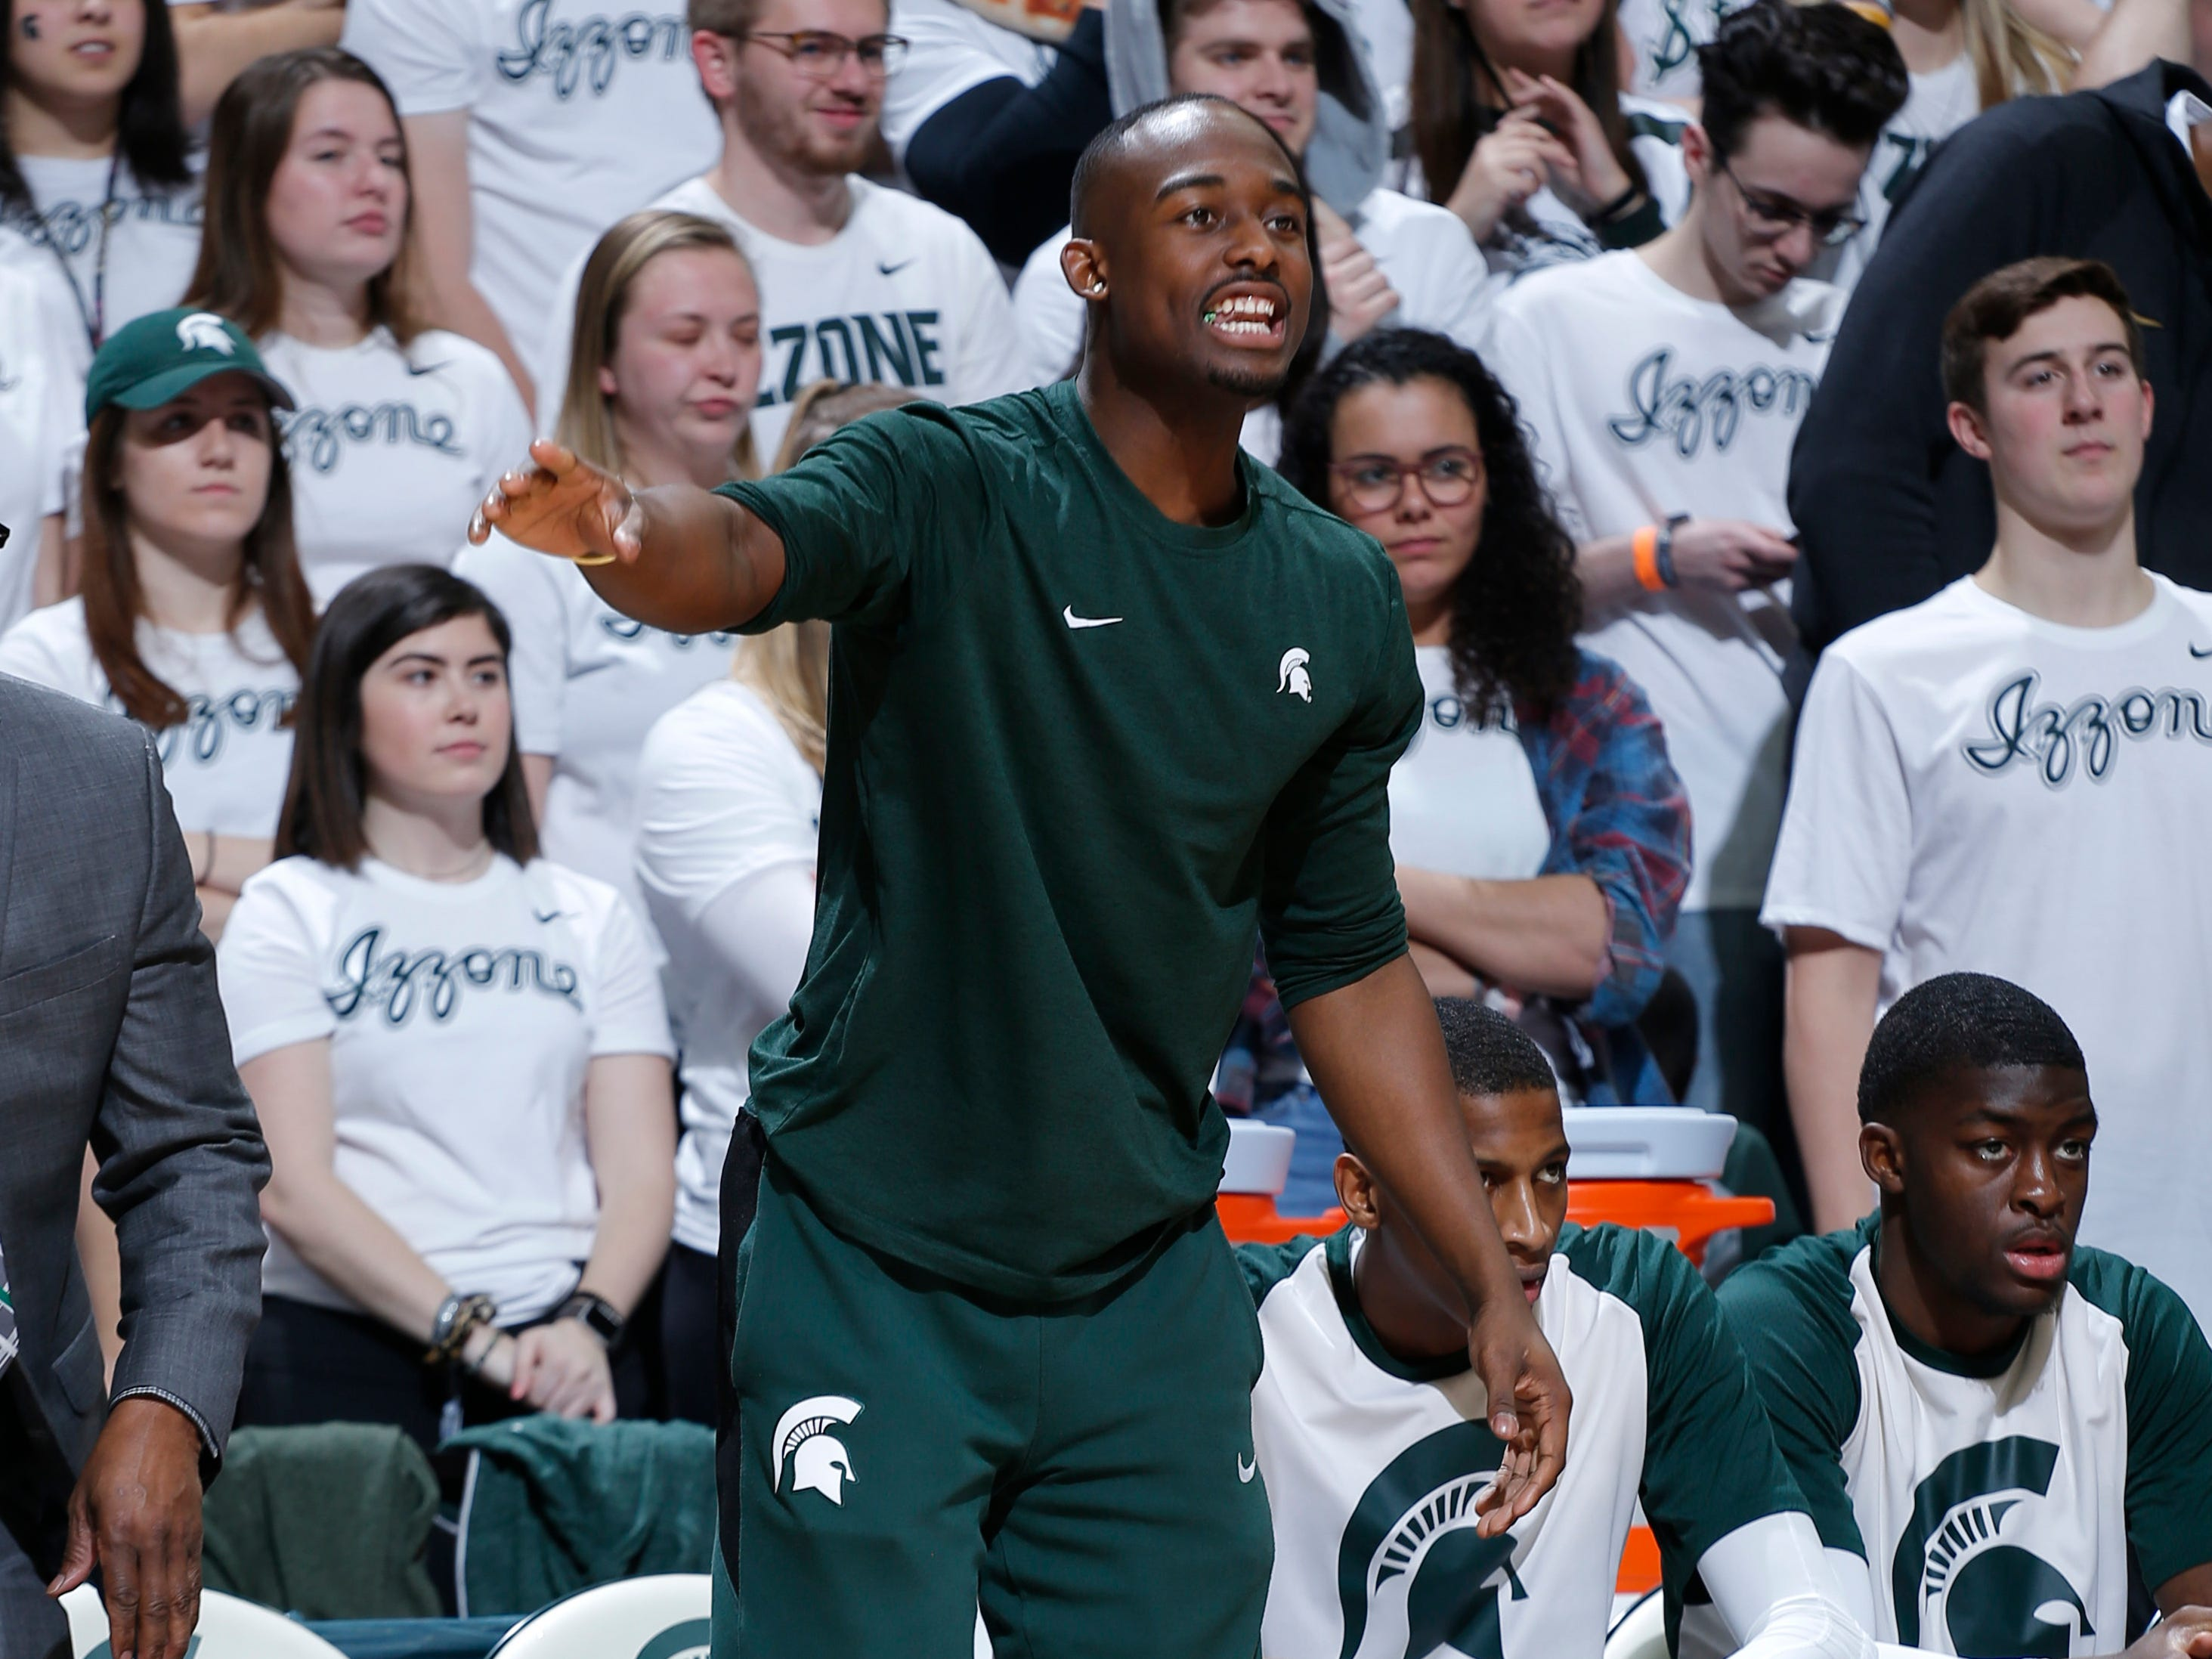 Injured Michigan State junior Joshua Langford shouts instructions to teammates during the Spartans' loss to Indiana on Saturday night. It was the first game since Langford was ruled out for the season with an ankle injury.